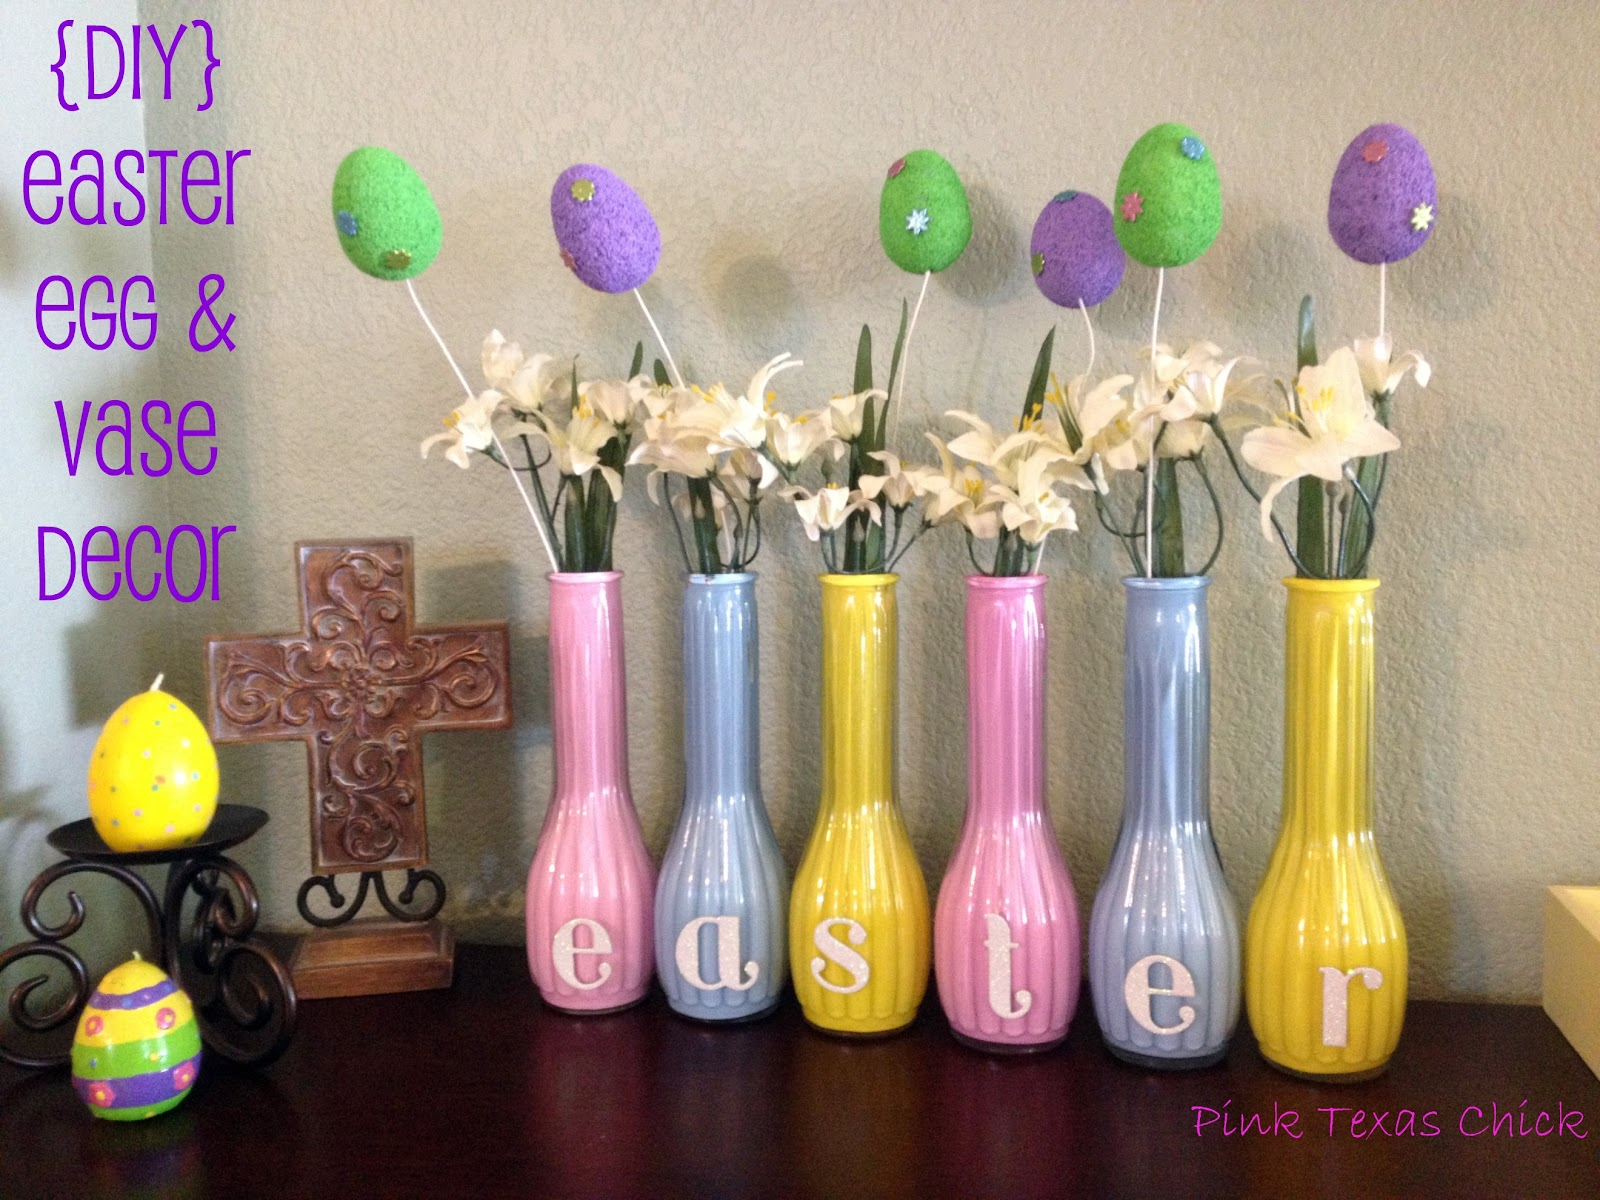 Easter egg and vase decor craft diy pink texas chick reviewsmspy